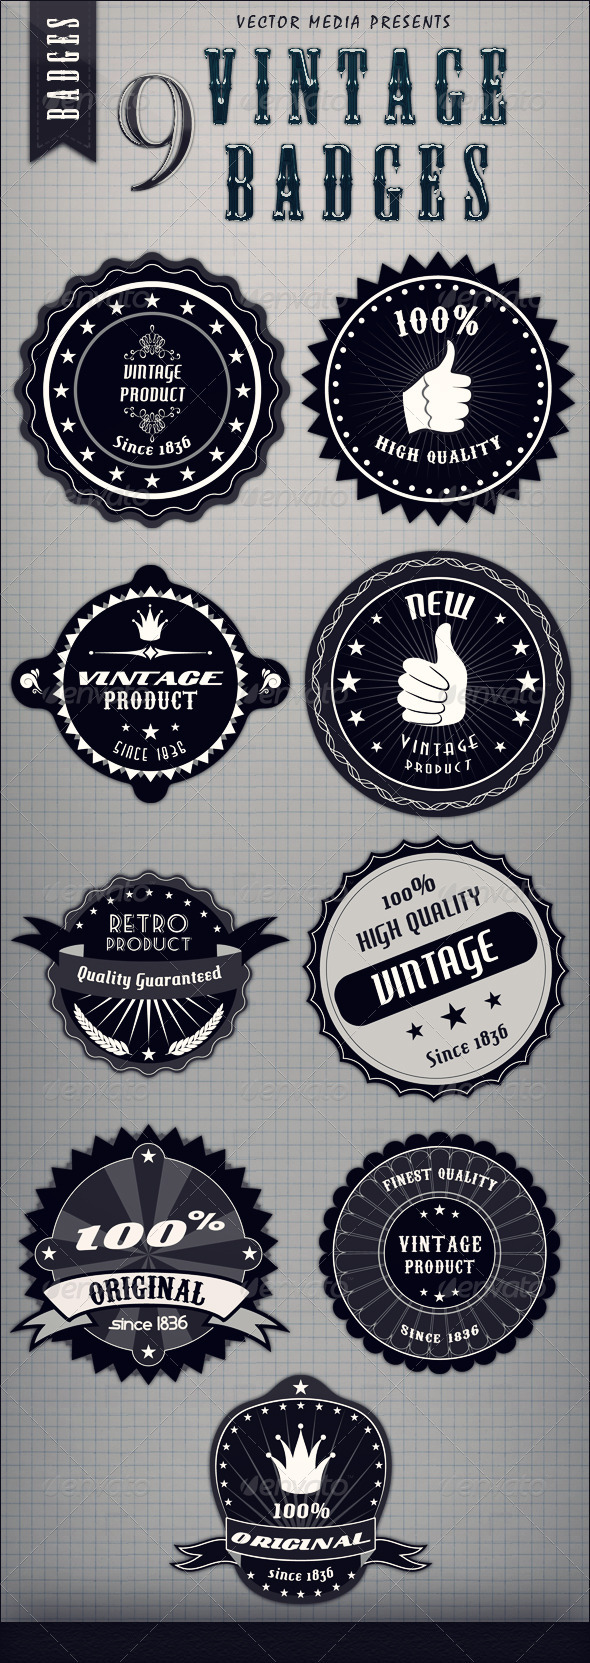 9 Vintage Badges - Web Elements Vectors